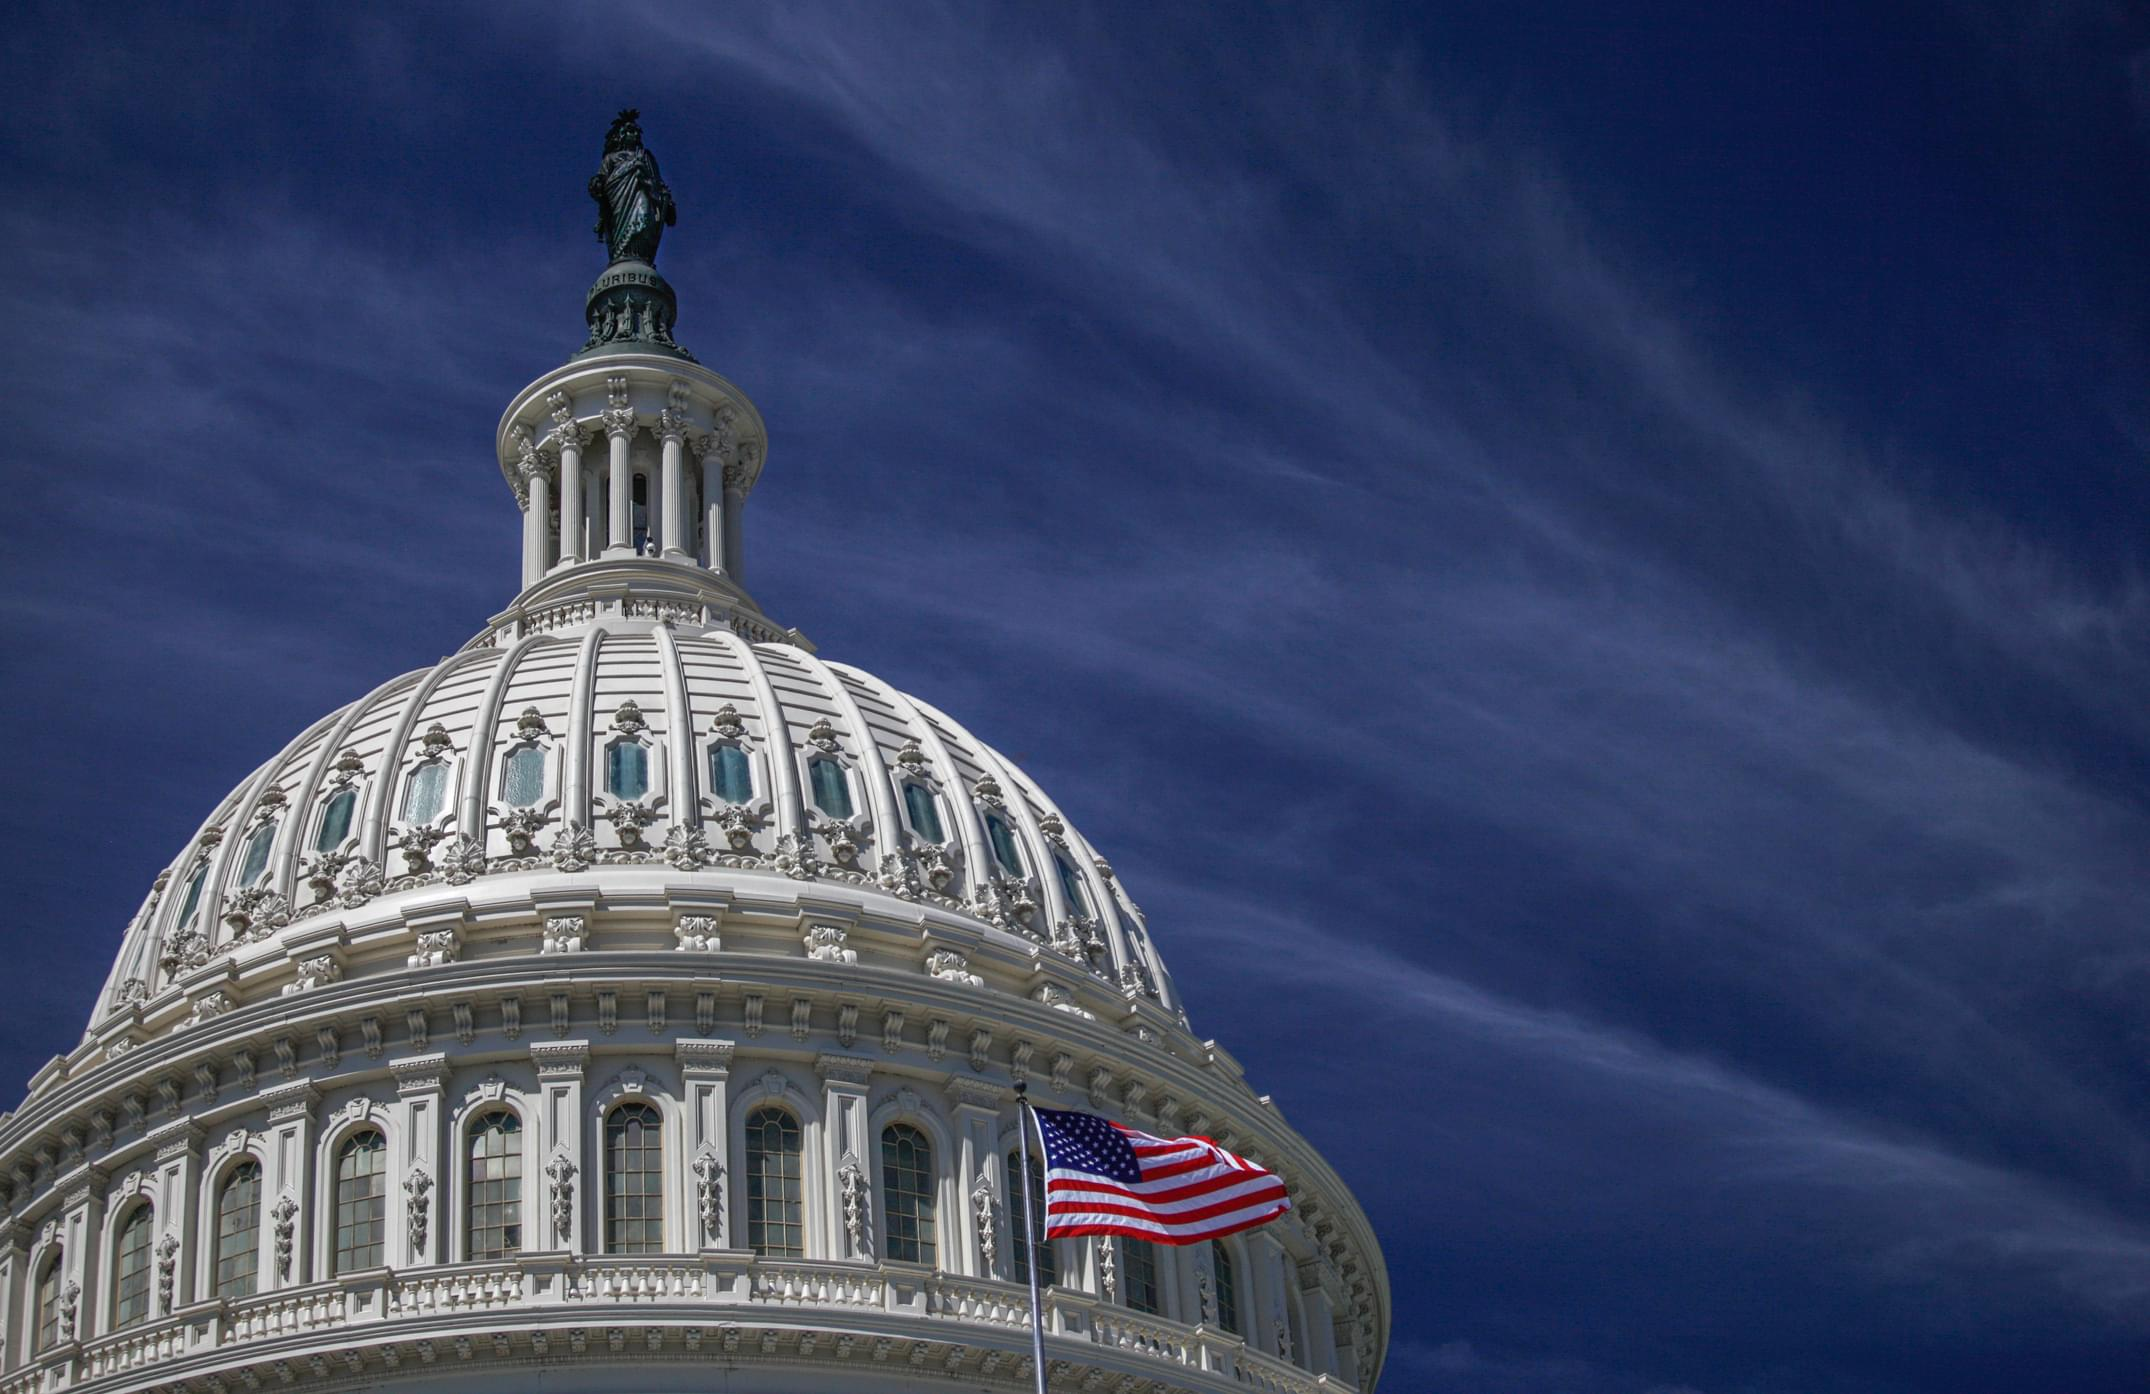 U.S. Capitol Building Dome and American Flag in Washington, DC